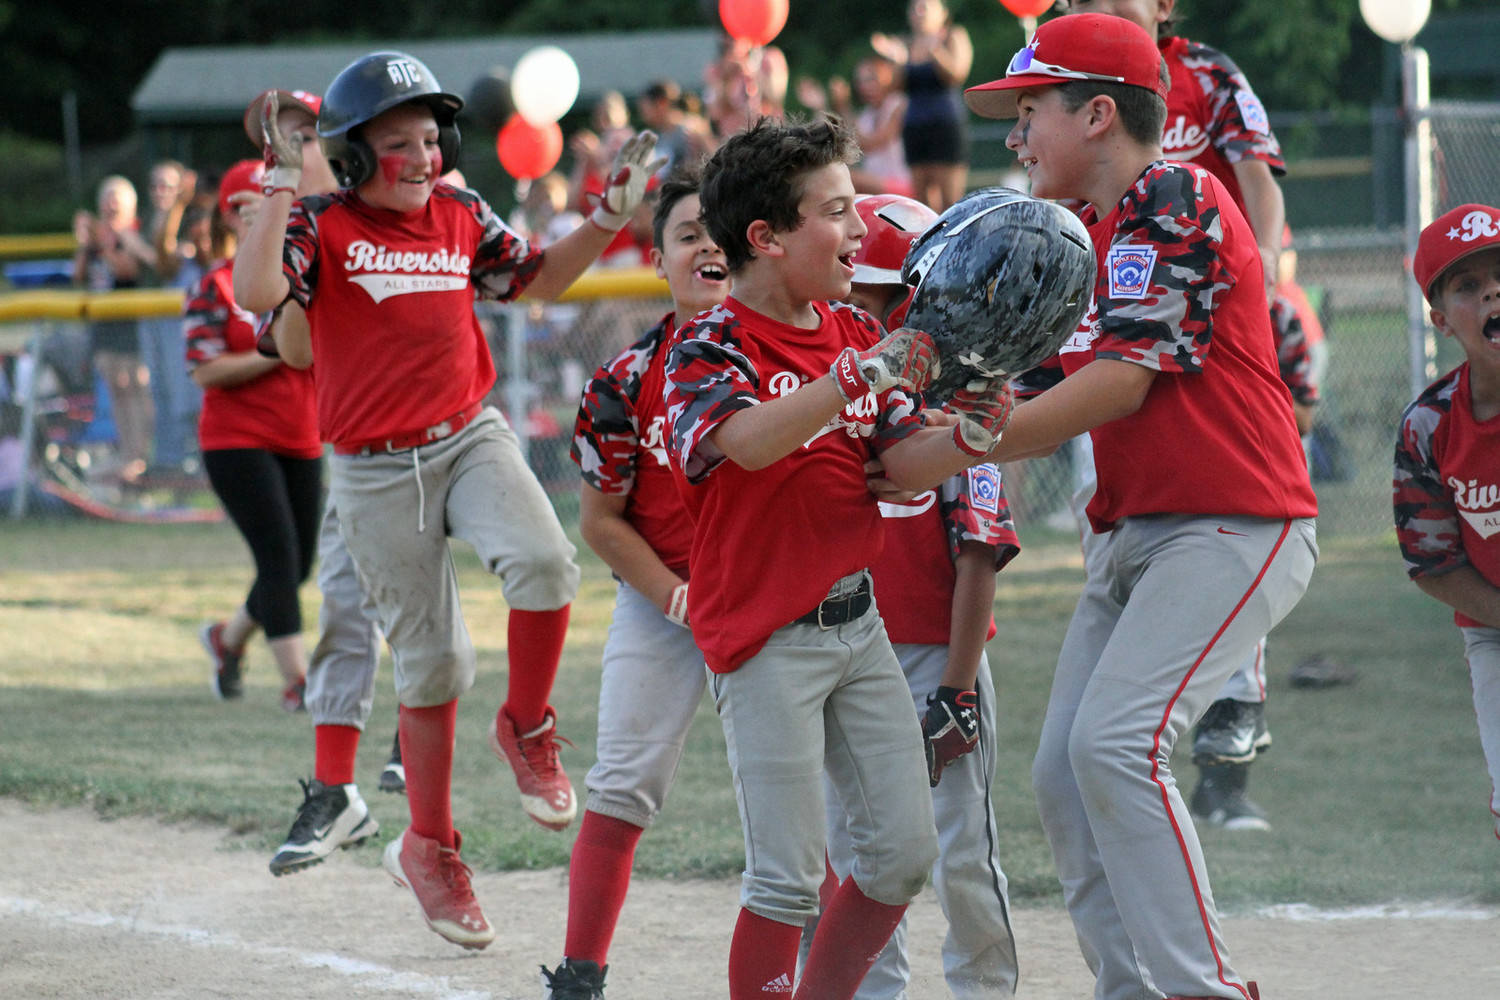 Riverside 9-10 all-stars start to celebrate title win over Rumford.  Photo by Tyler Saunders Maxwell